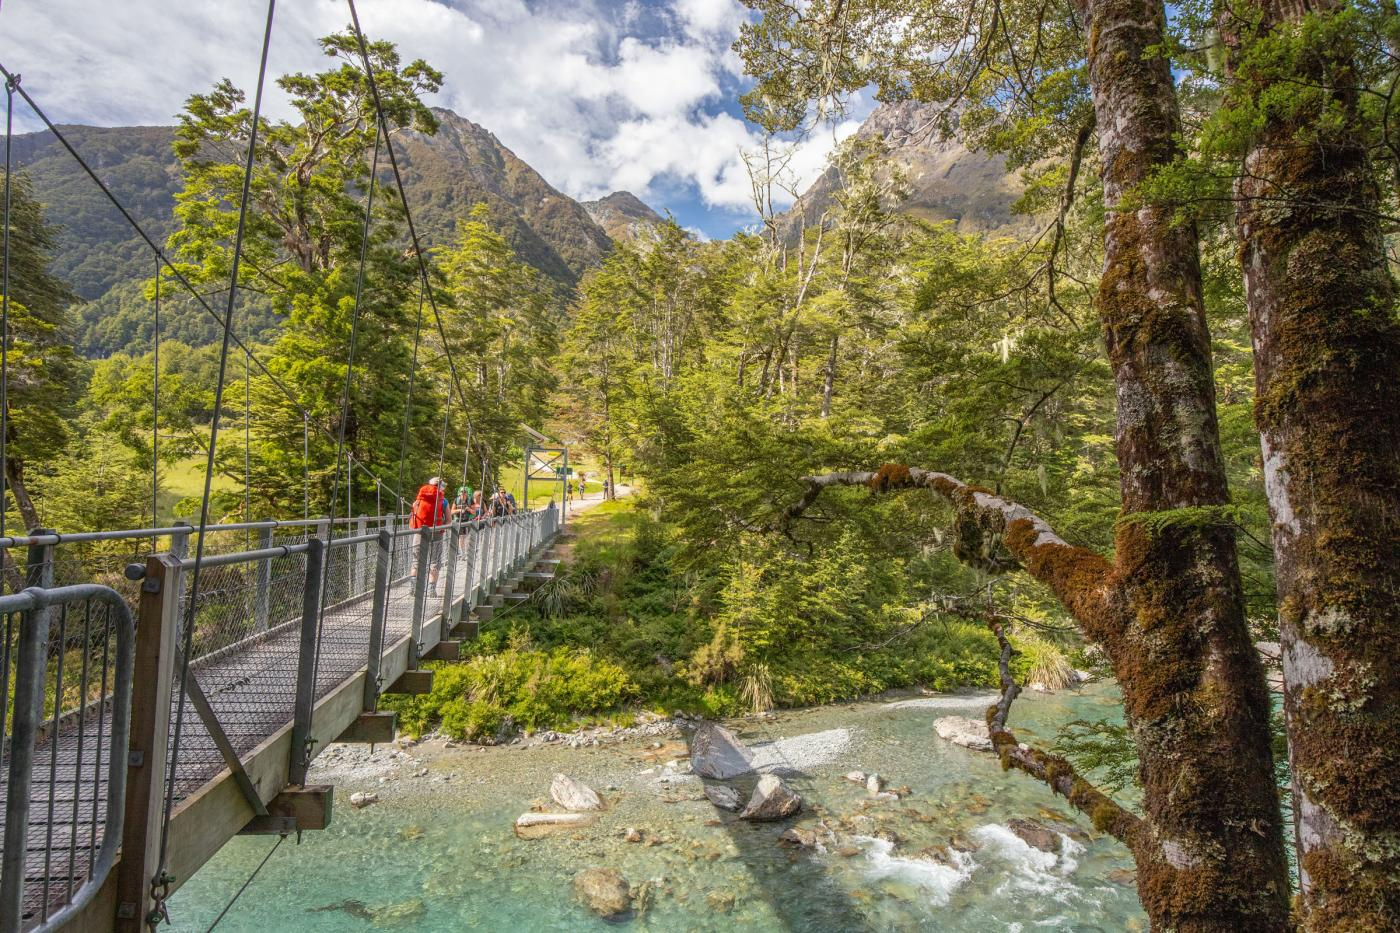 A group walking over a swing bridge in lush bush, over a blue stream